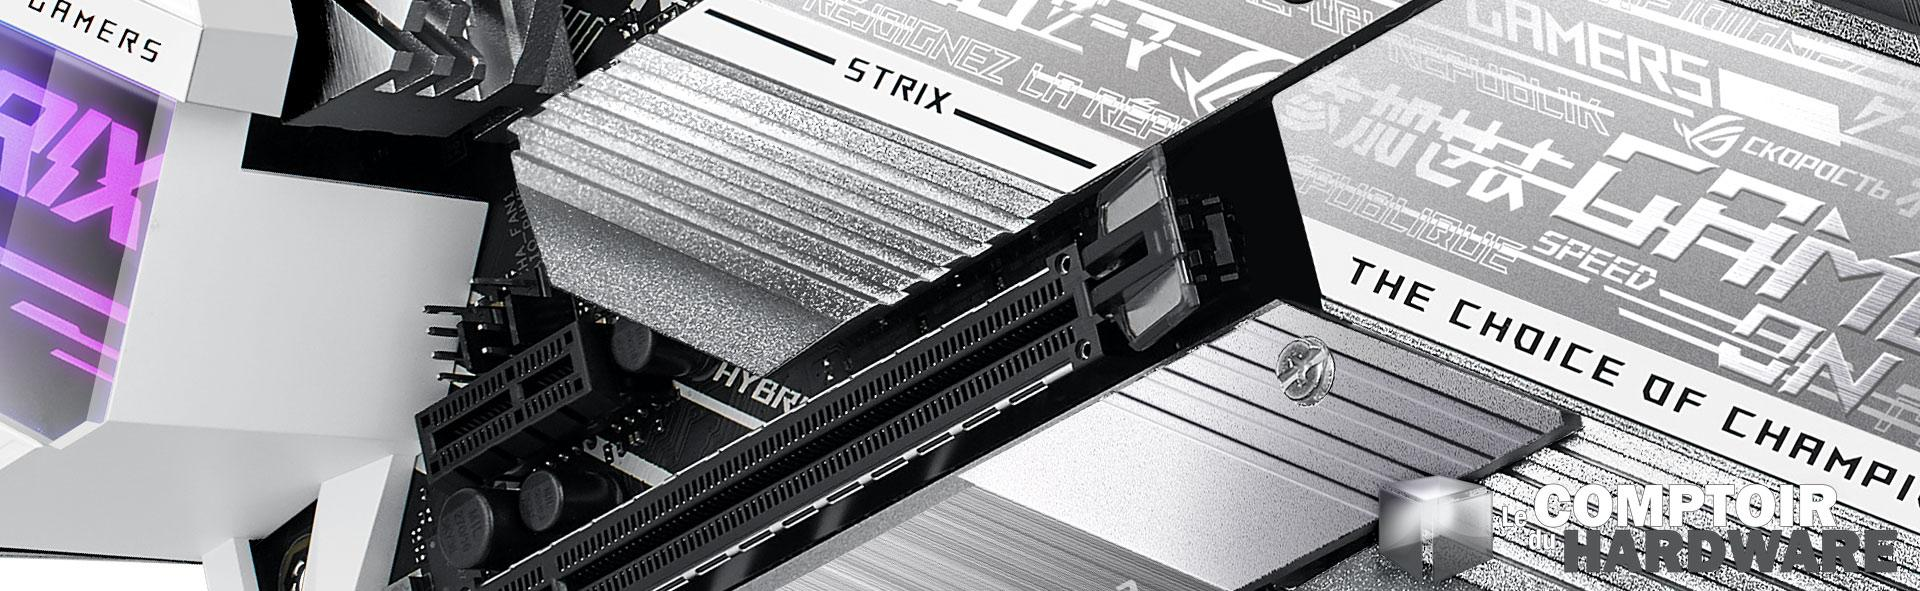 review asus strix Z490-A